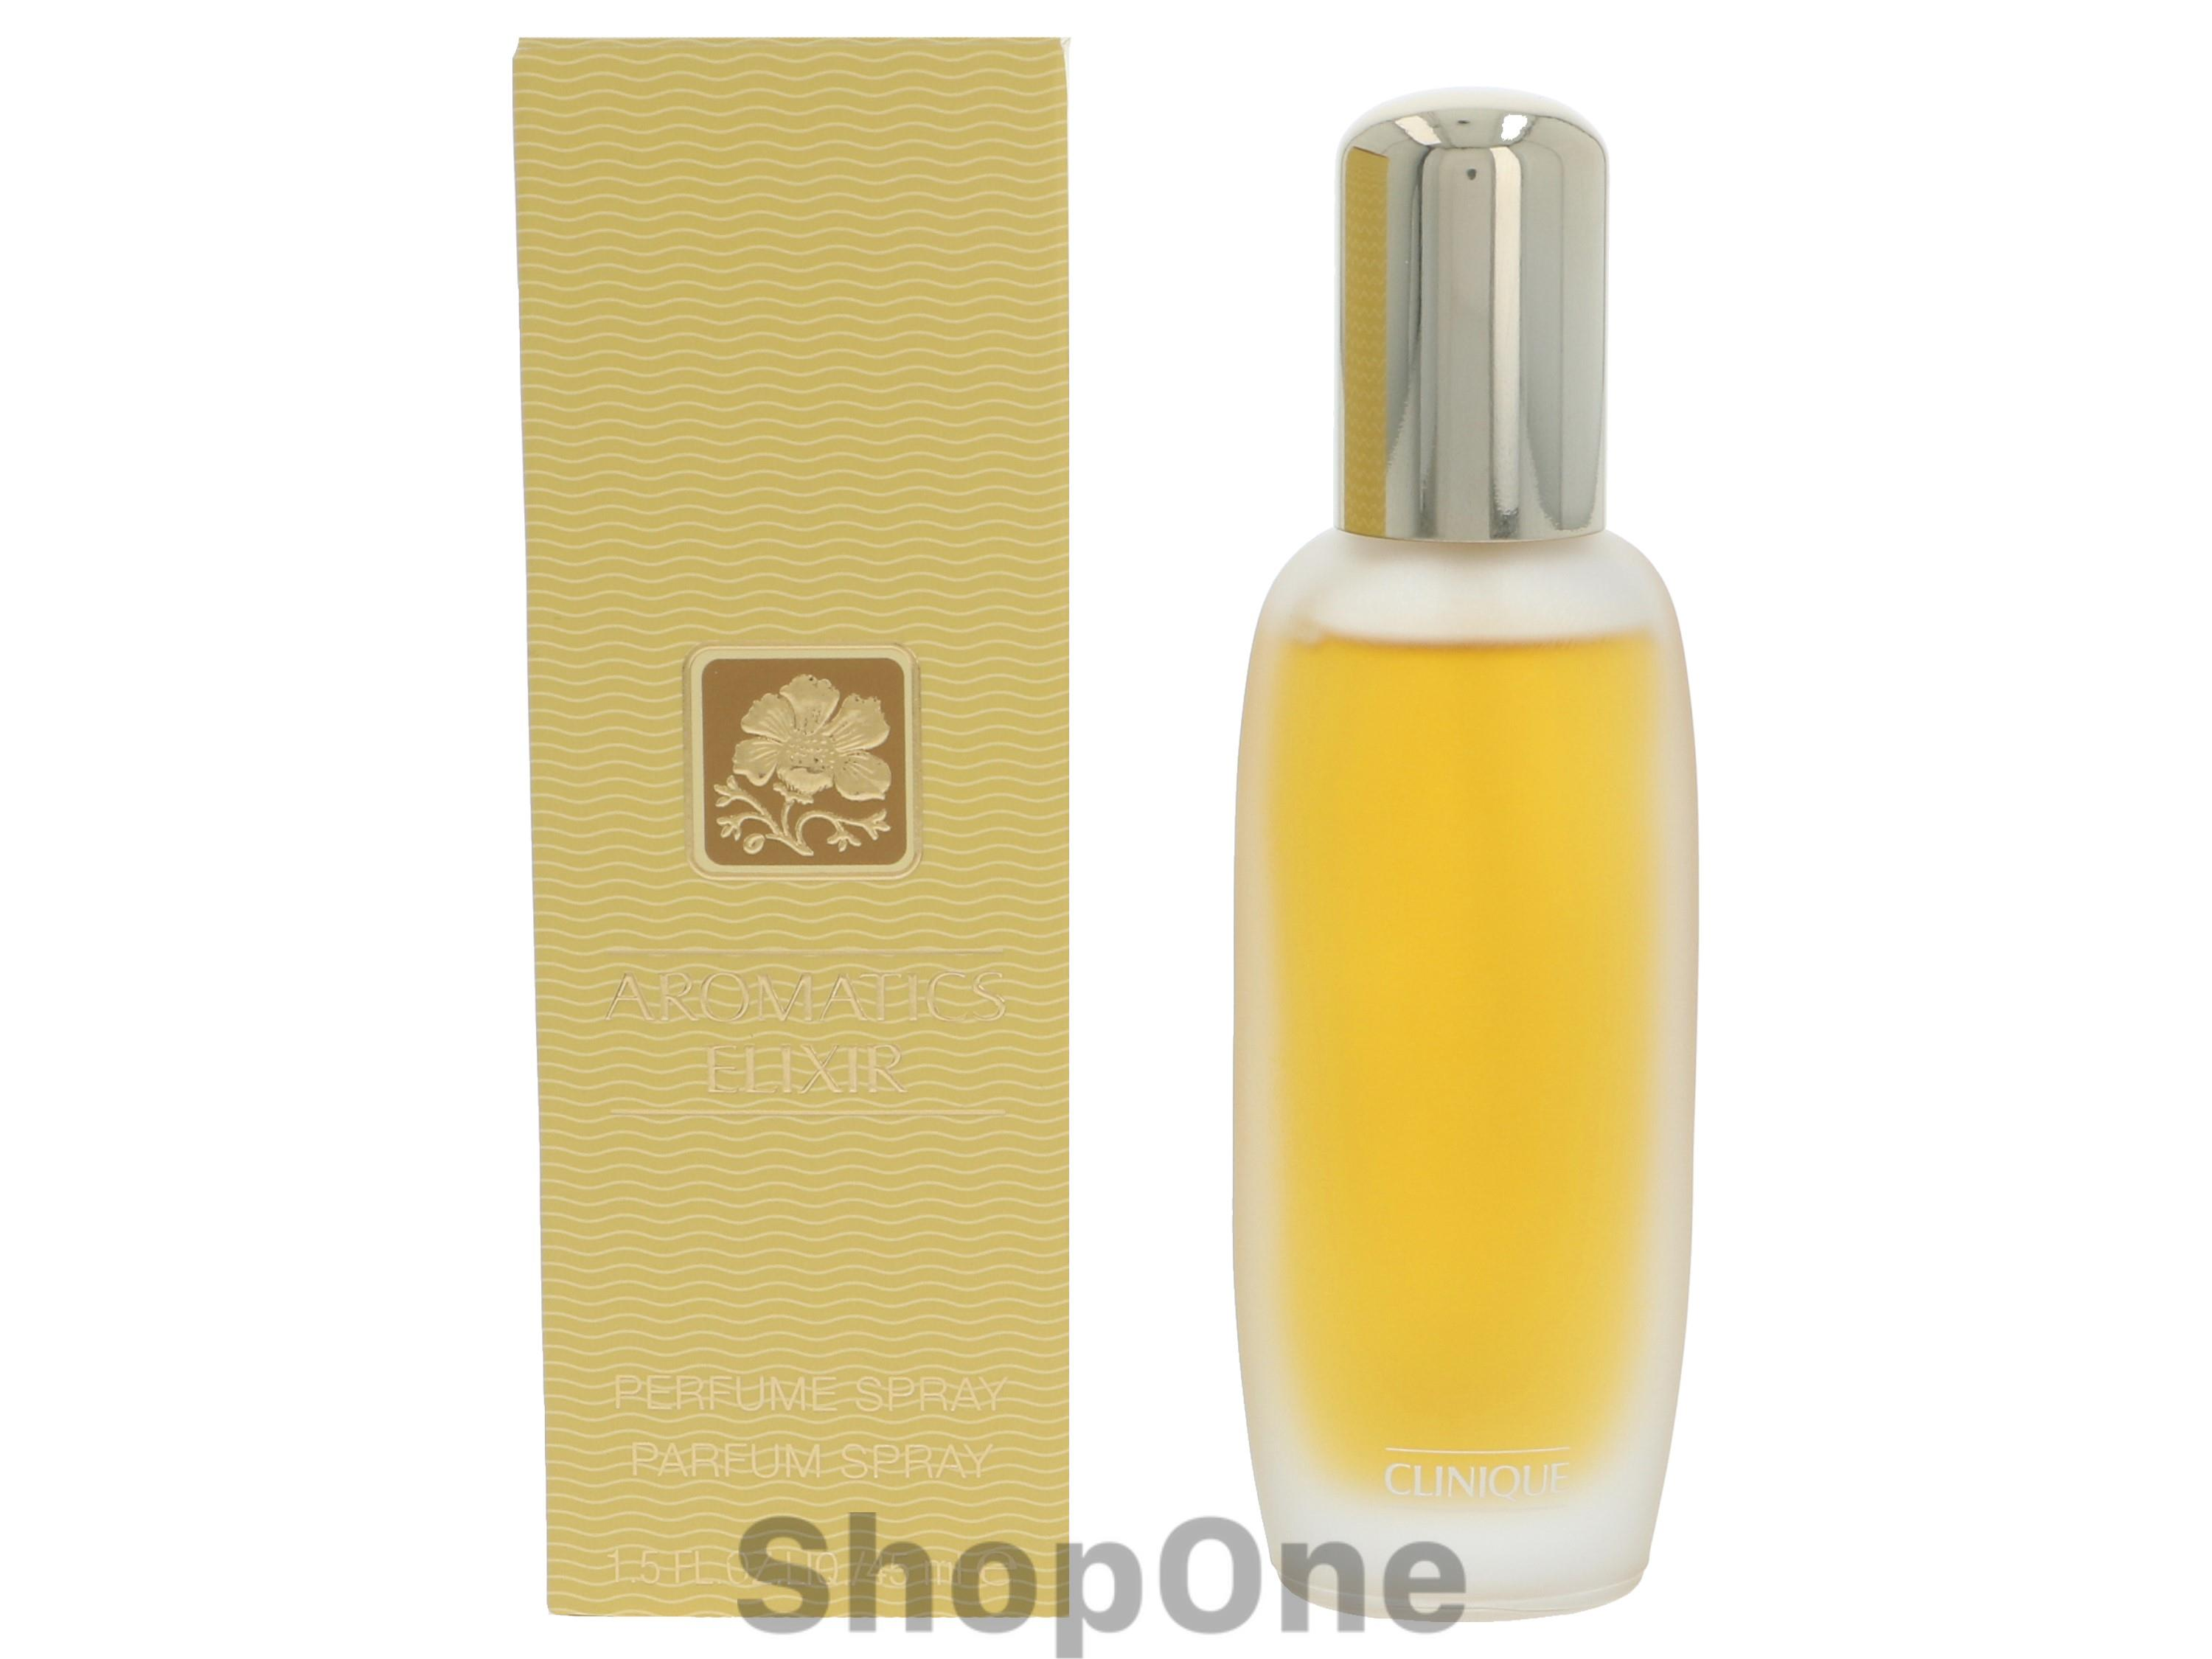 Image of   Aromatics Elixir Edp Spray 45 ml fra Clinique